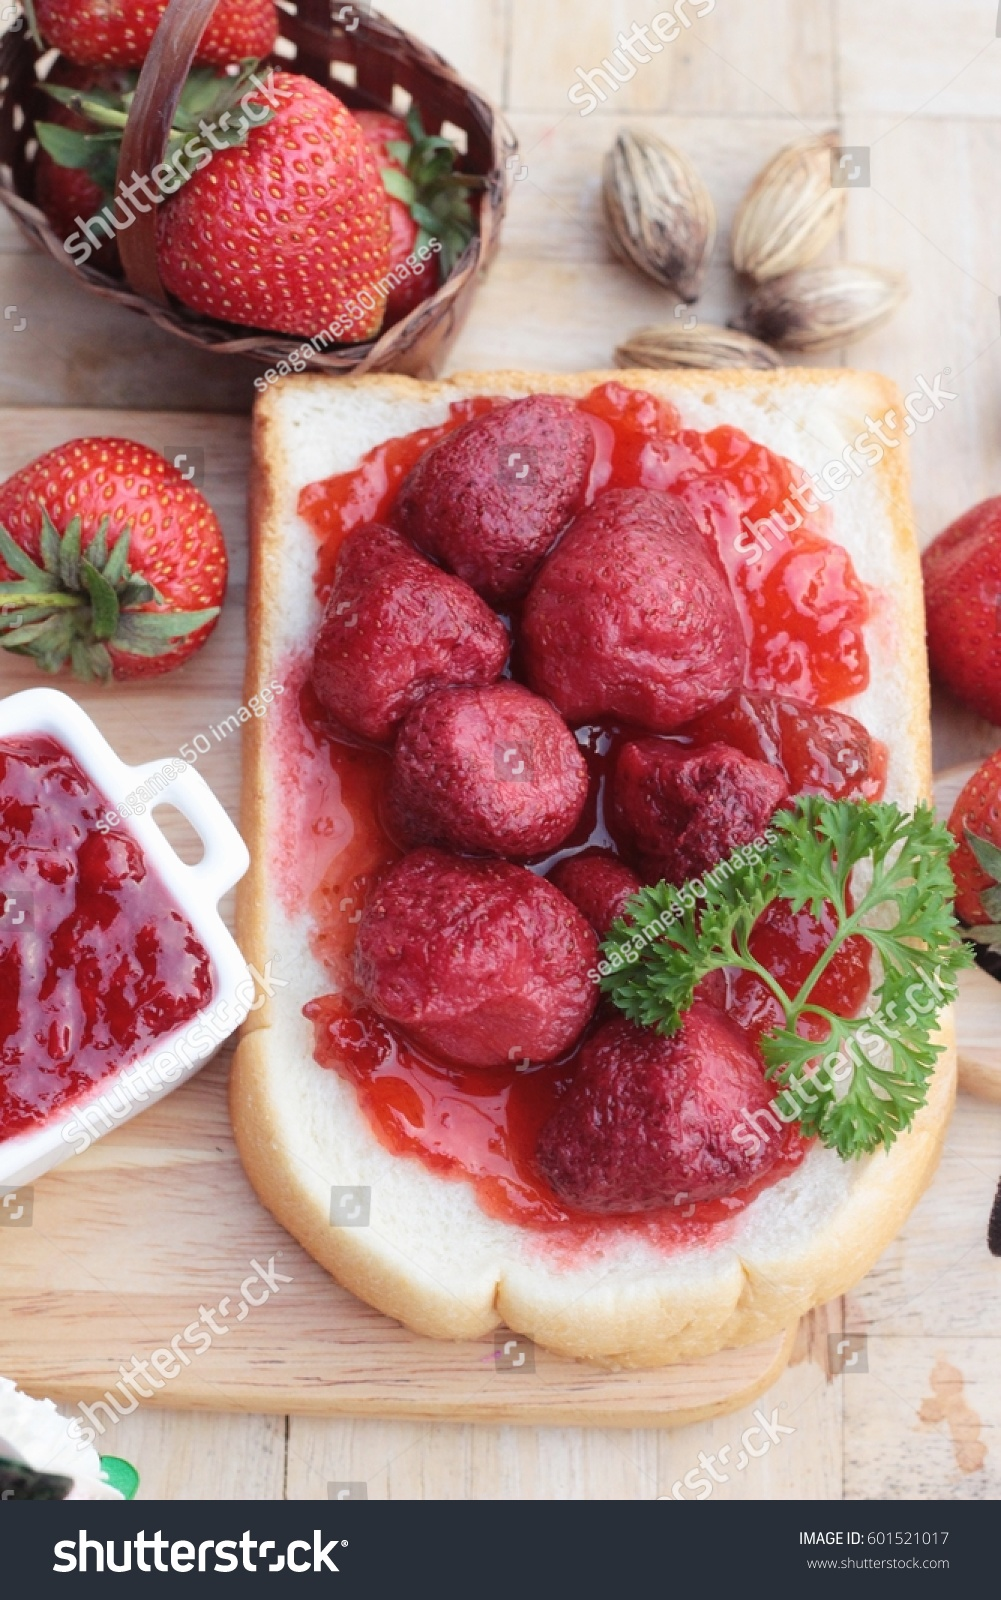 Strawberry jam with slice of bread delicious #601521017